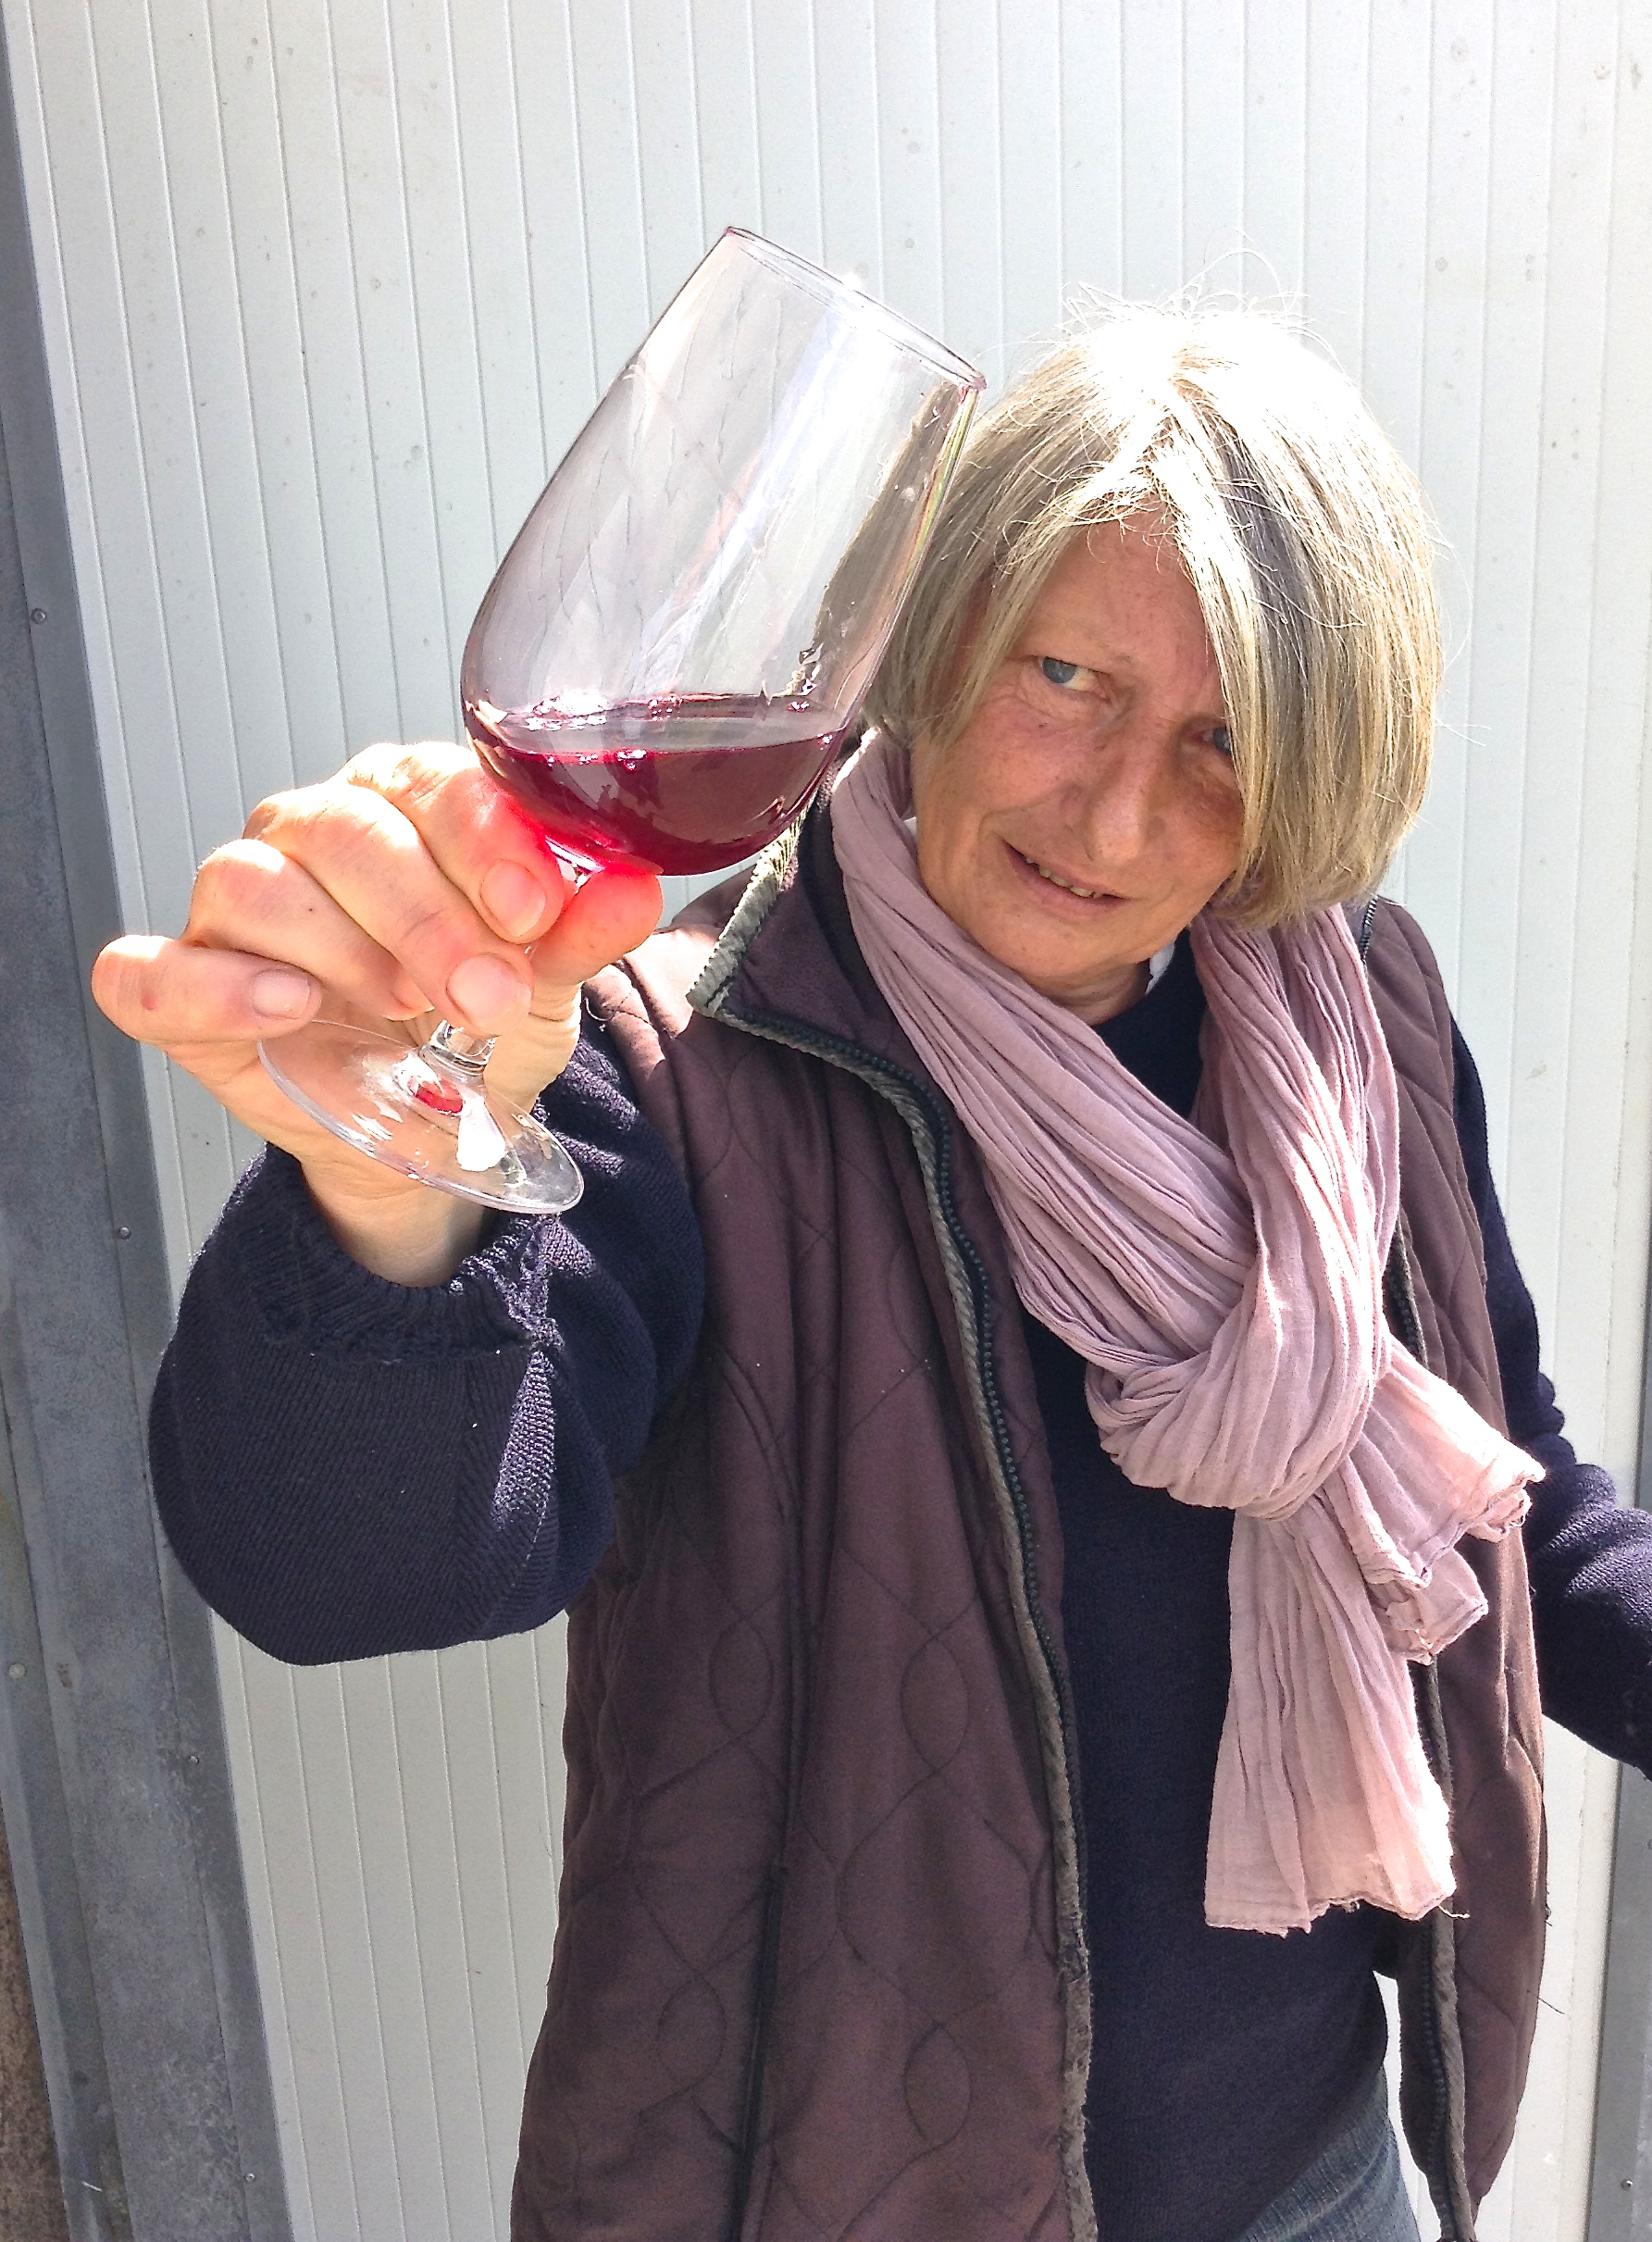 Pascale Bervas - her skills have made our terroir special.